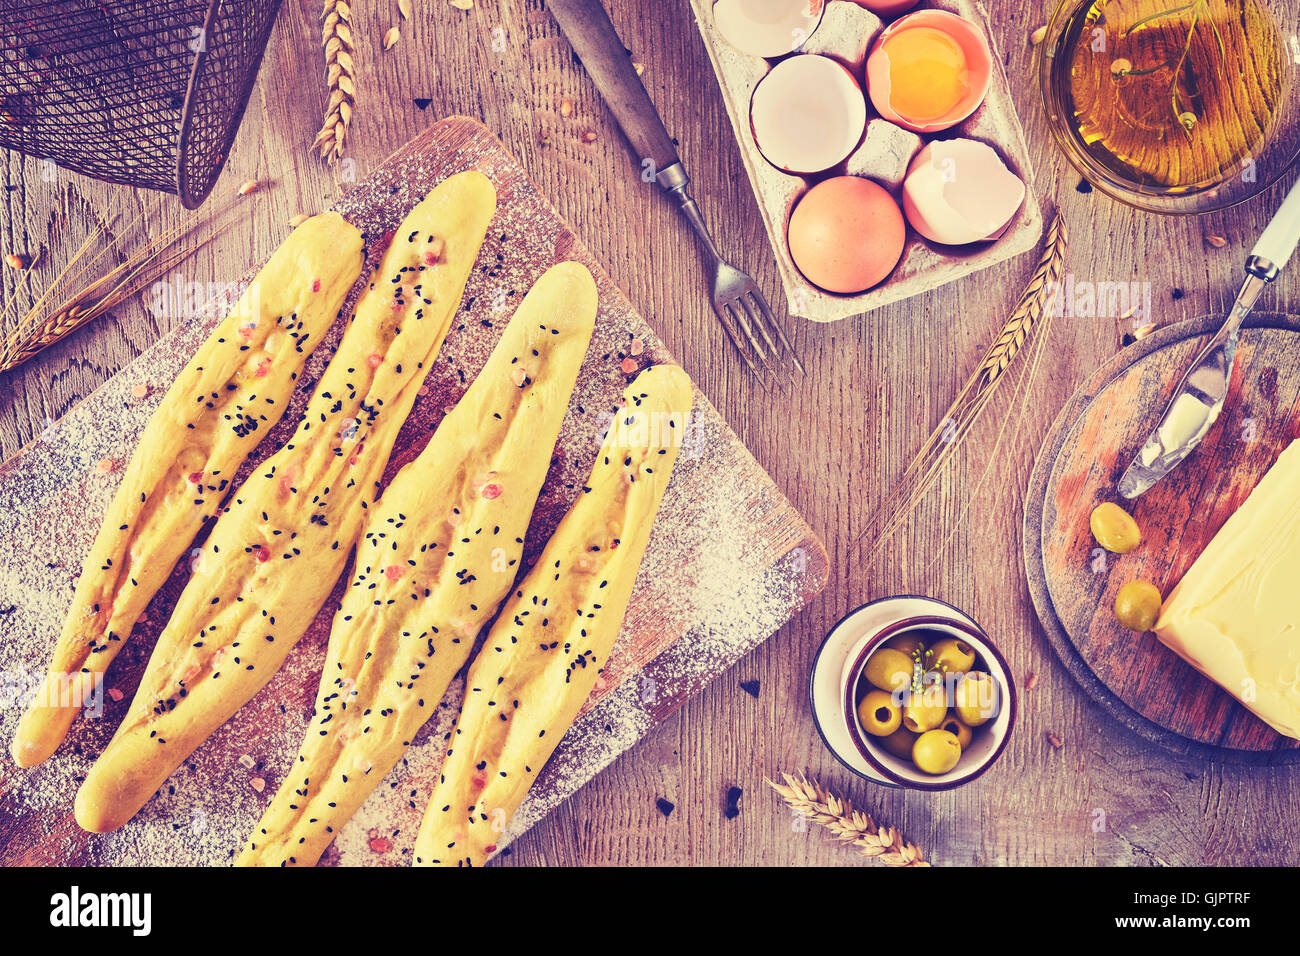 Vintage toned bread sticks ready for baking, rustic setting on a wooden table. - Stock Image